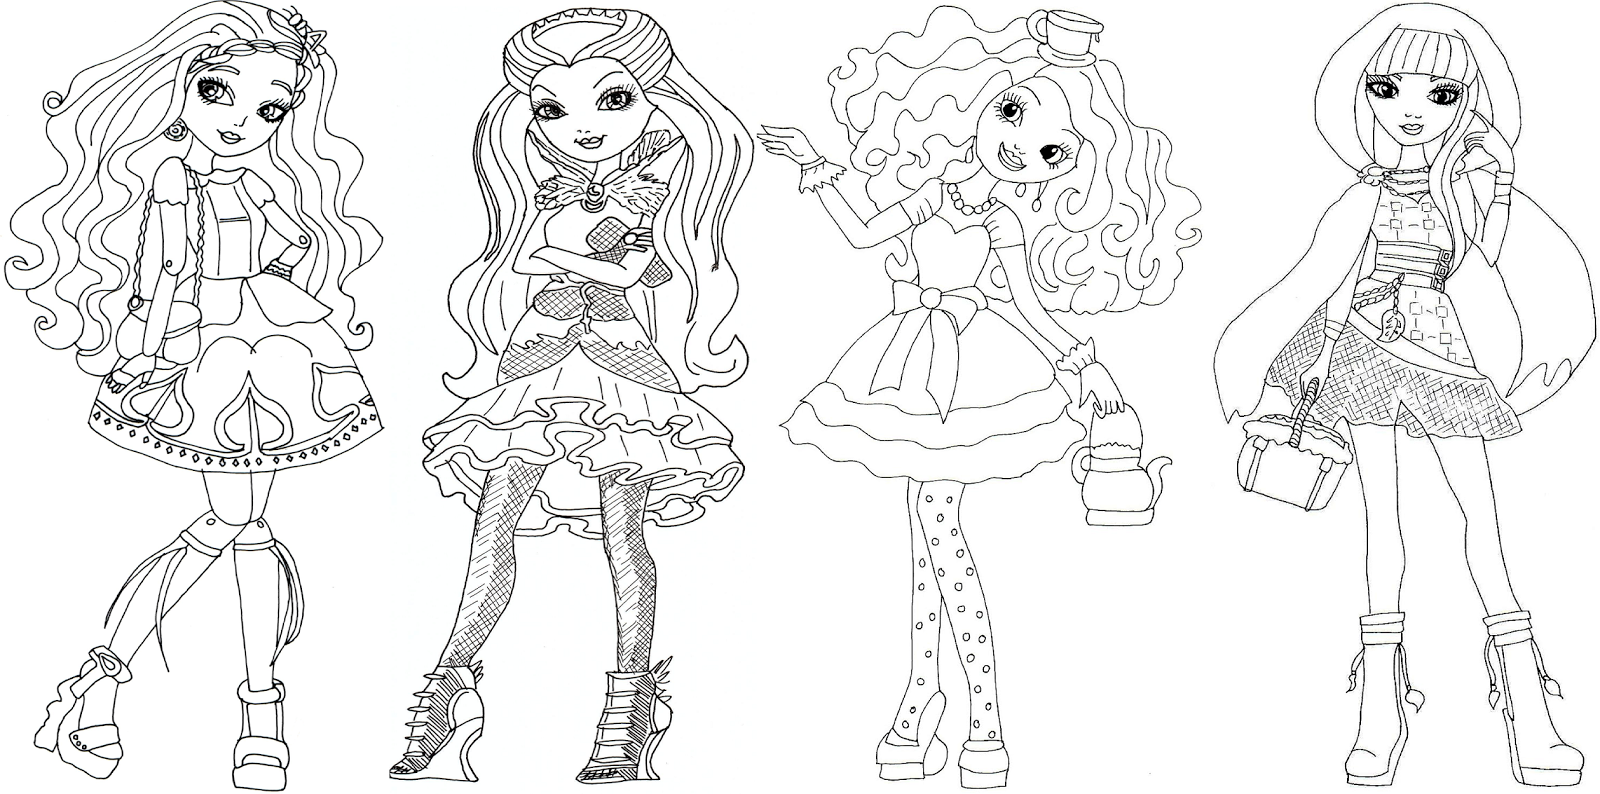 Free Printable Ever After High Coloring Page For Cedar Wood Raven Queen Madeline Hatter And Cerise Hood